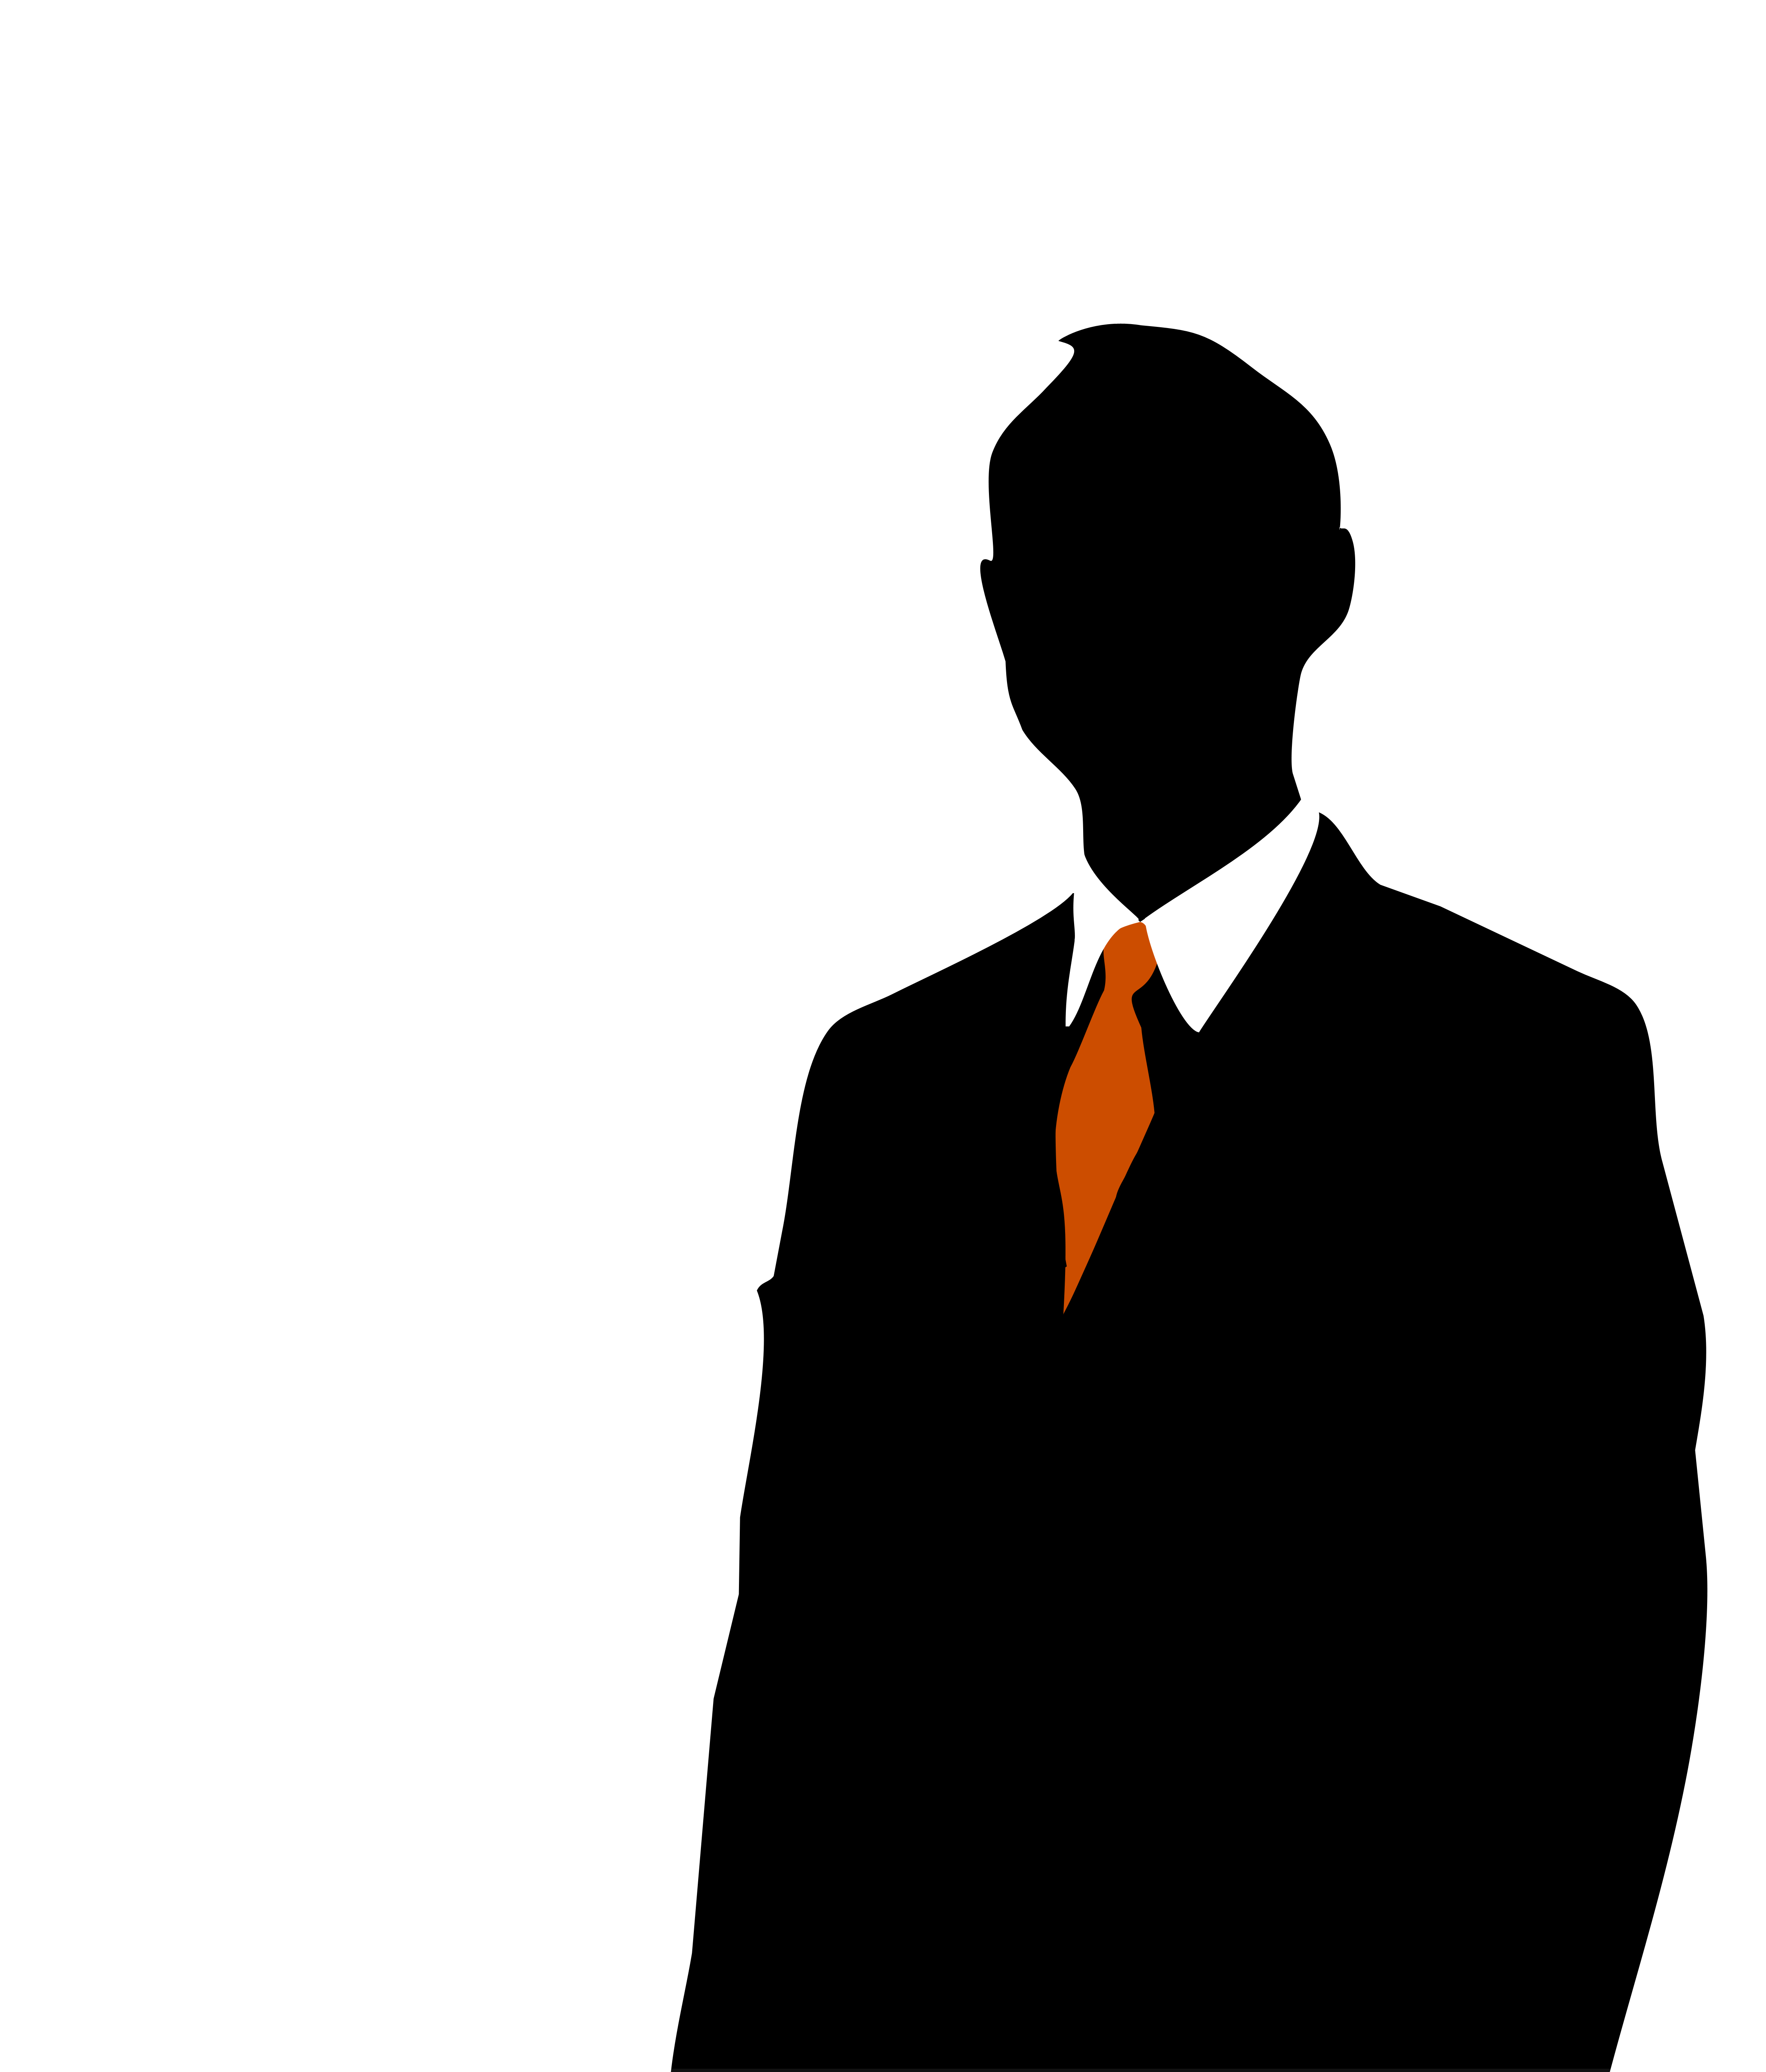 4500x5280 Free Silhouette Of Man, Hanslodge Clip Art Collection